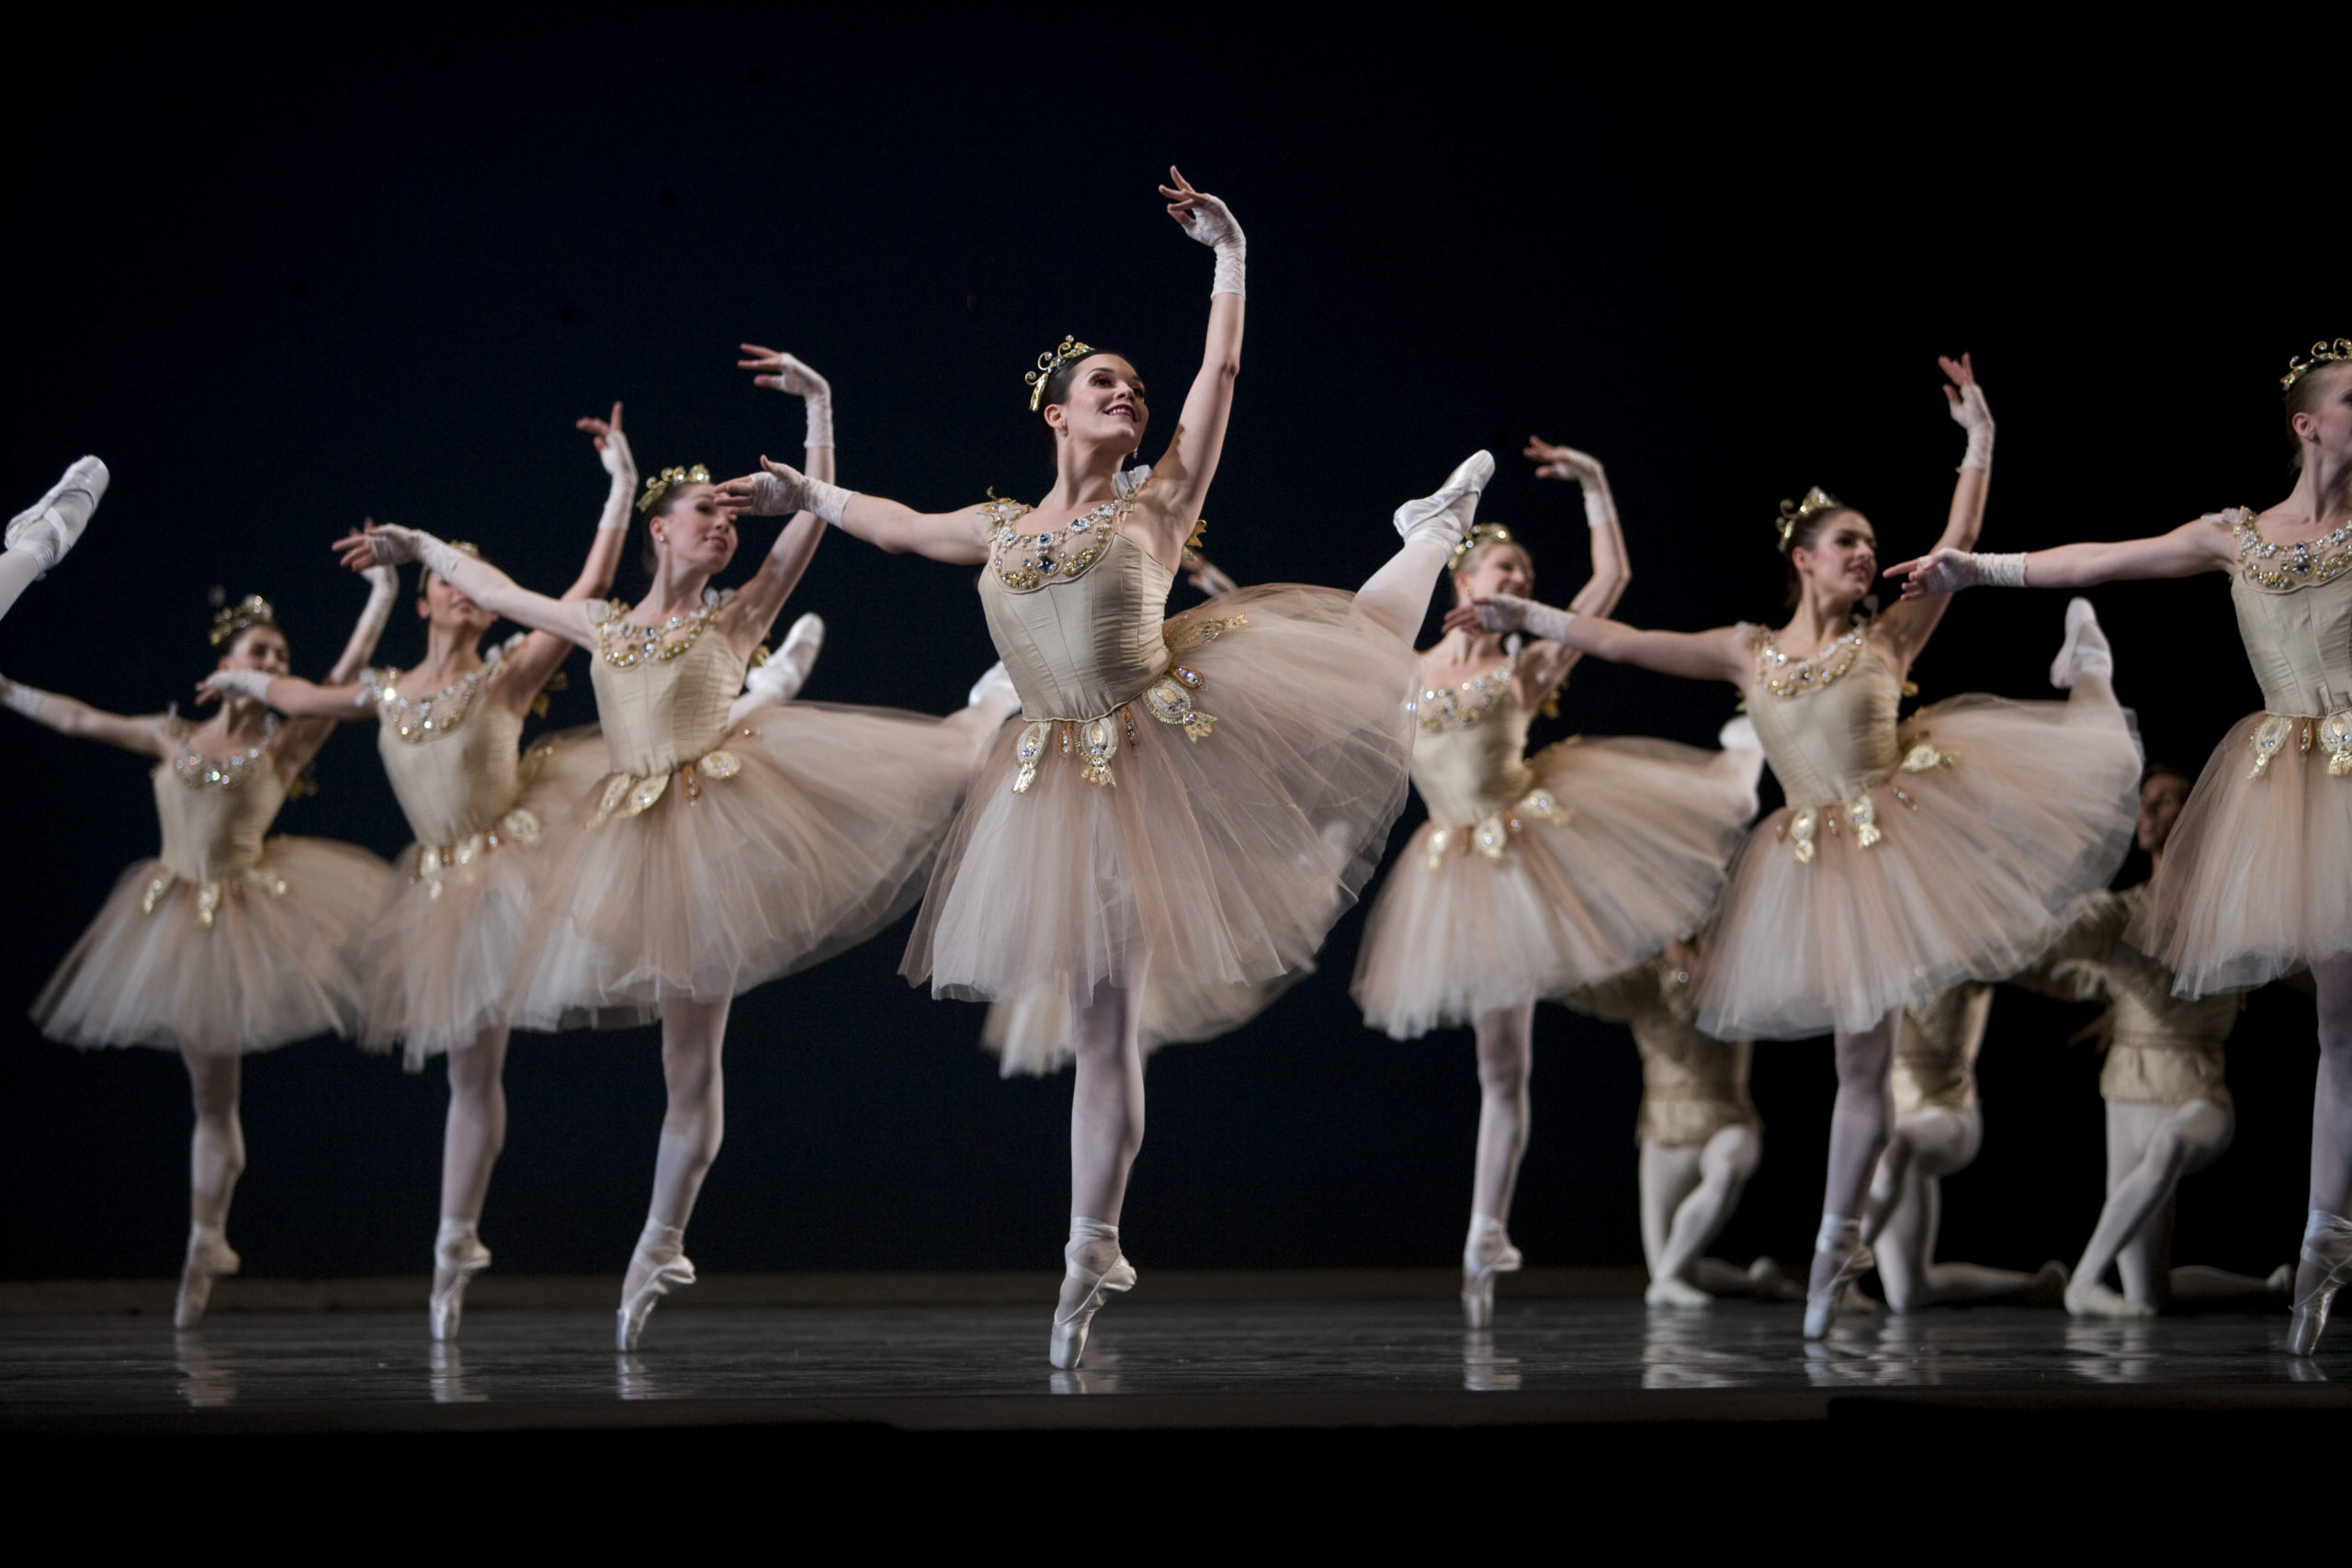 SAN FRANCISCO BALLET PRESENTS THE 87TH REPERTORY SEASON OPENING NIGHT GALA: SPELLBOUND ON THURSDAY, JANUARY 16, 2020